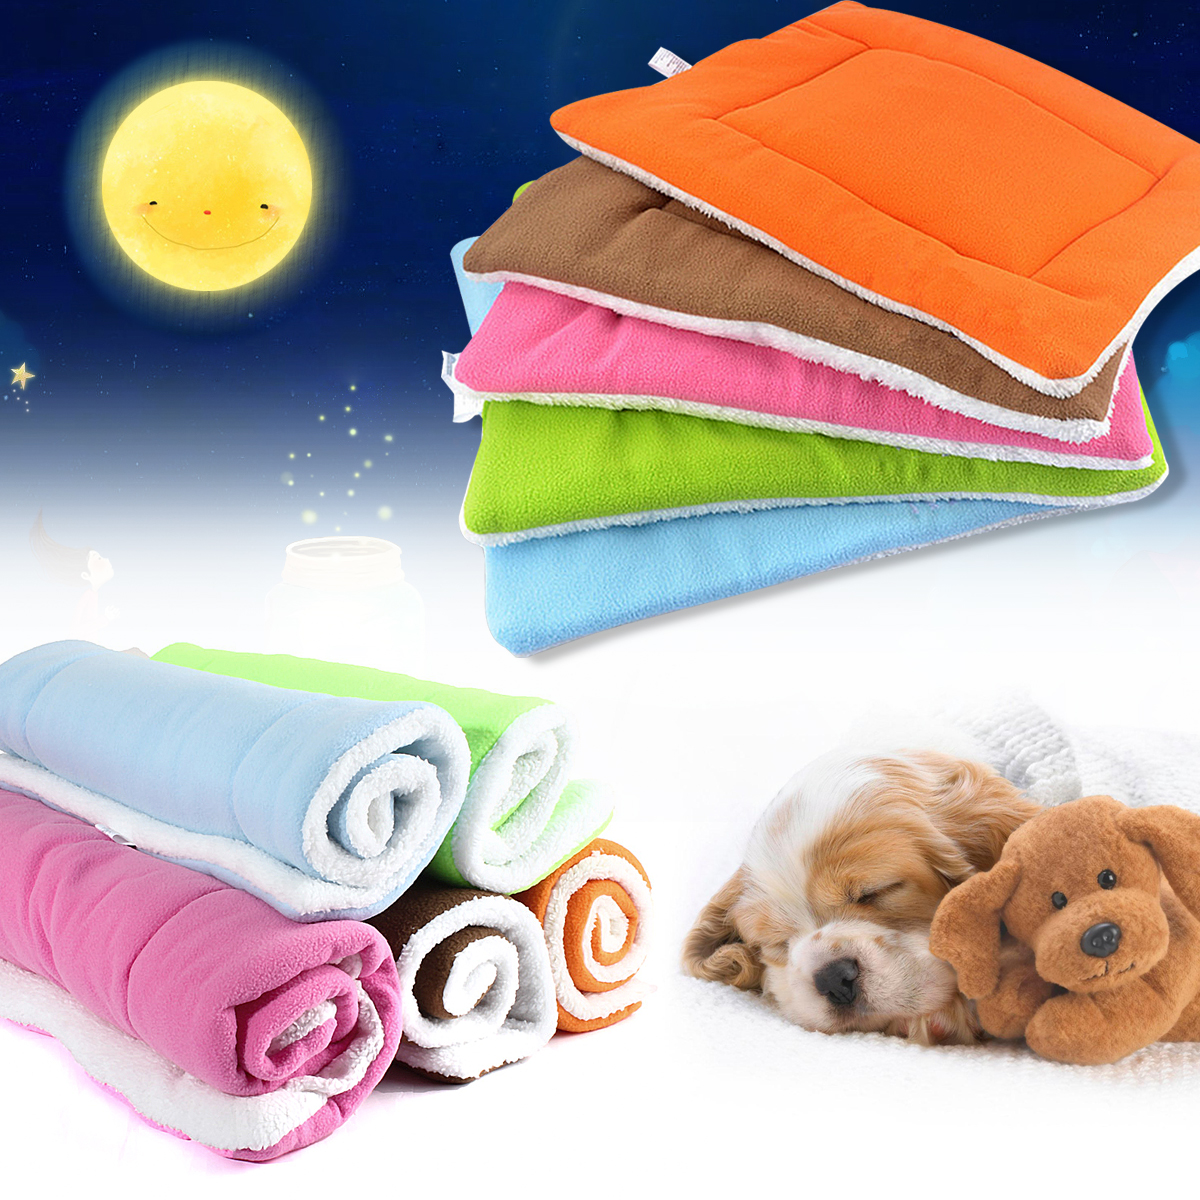 Dog Cat Pet Beds Washable Soft Comfortable Warm Bed Mat Padding House Sleep Crate Fleece Kennel Cushion Pet Blanket Bed, S M L XL Size